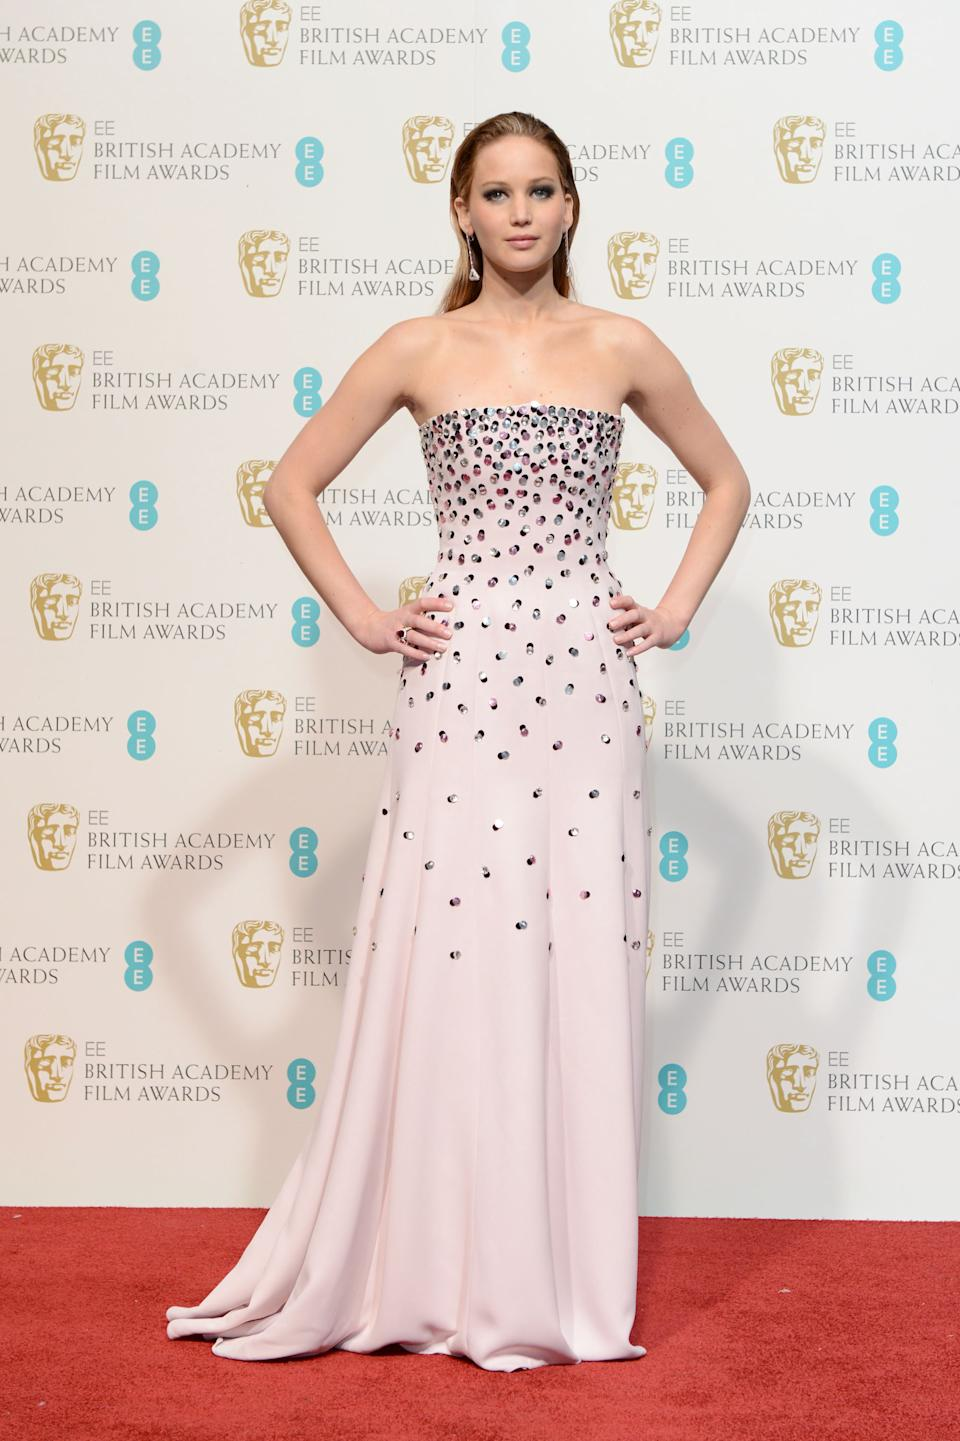 Actress Jennifer Lawrence poses backstage at the BAFTA Film Awards at the Royal Opera House on Sunday, Feb. 10, 2013, in London. (Photo by Jon Furniss/Invision/AP)